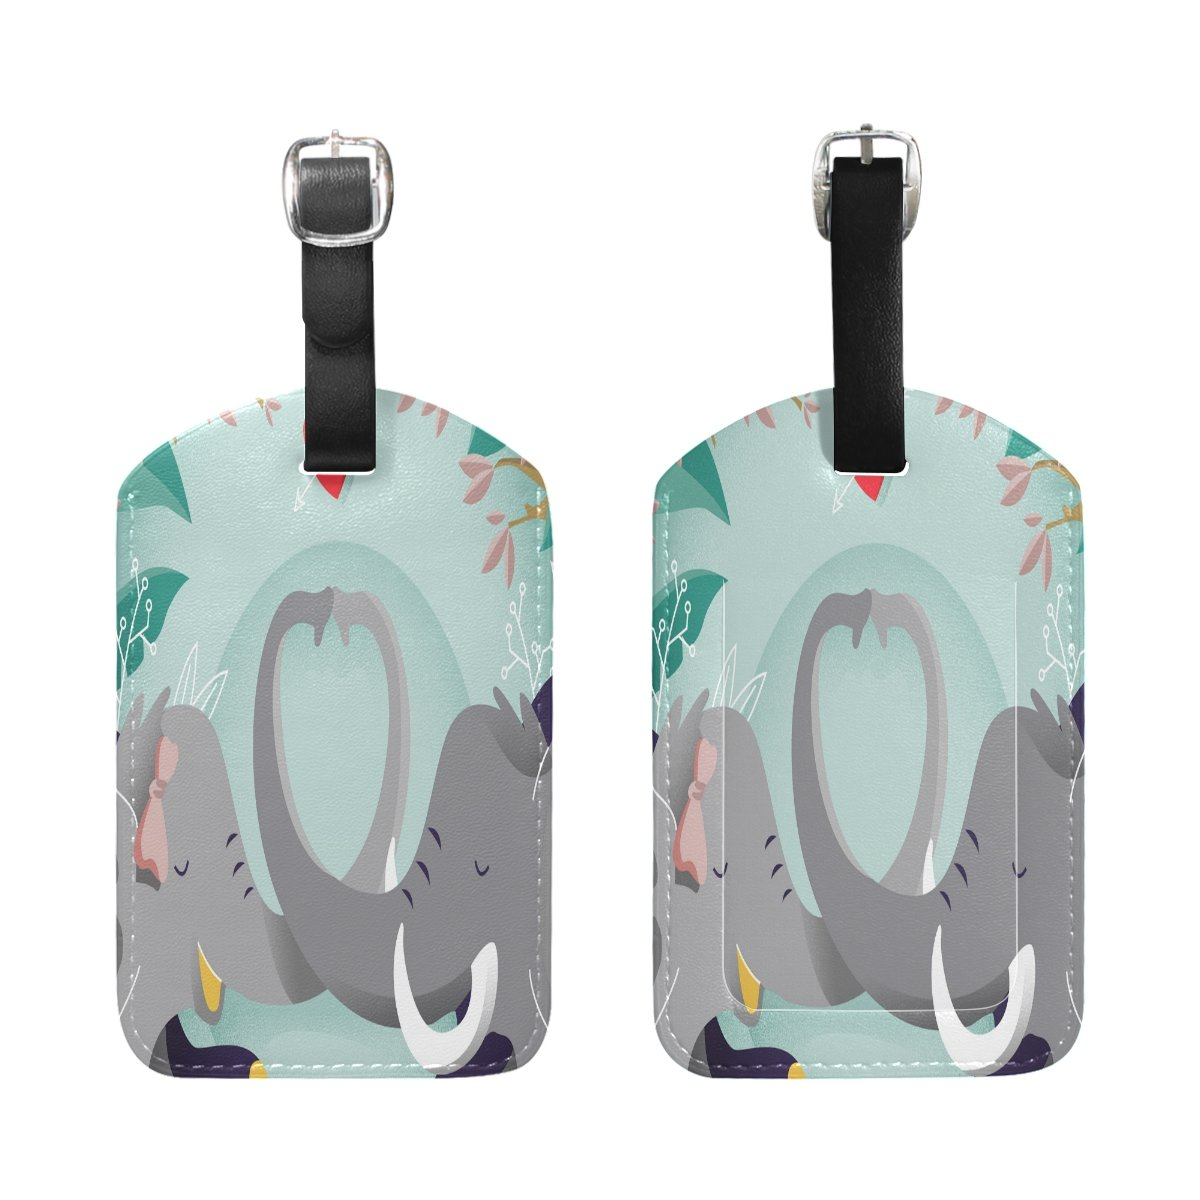 Saobao Travel Luggage Tag Lovely Elephant PU Leather Baggage Suitcase Travel ID Bag Tag 1Pcs